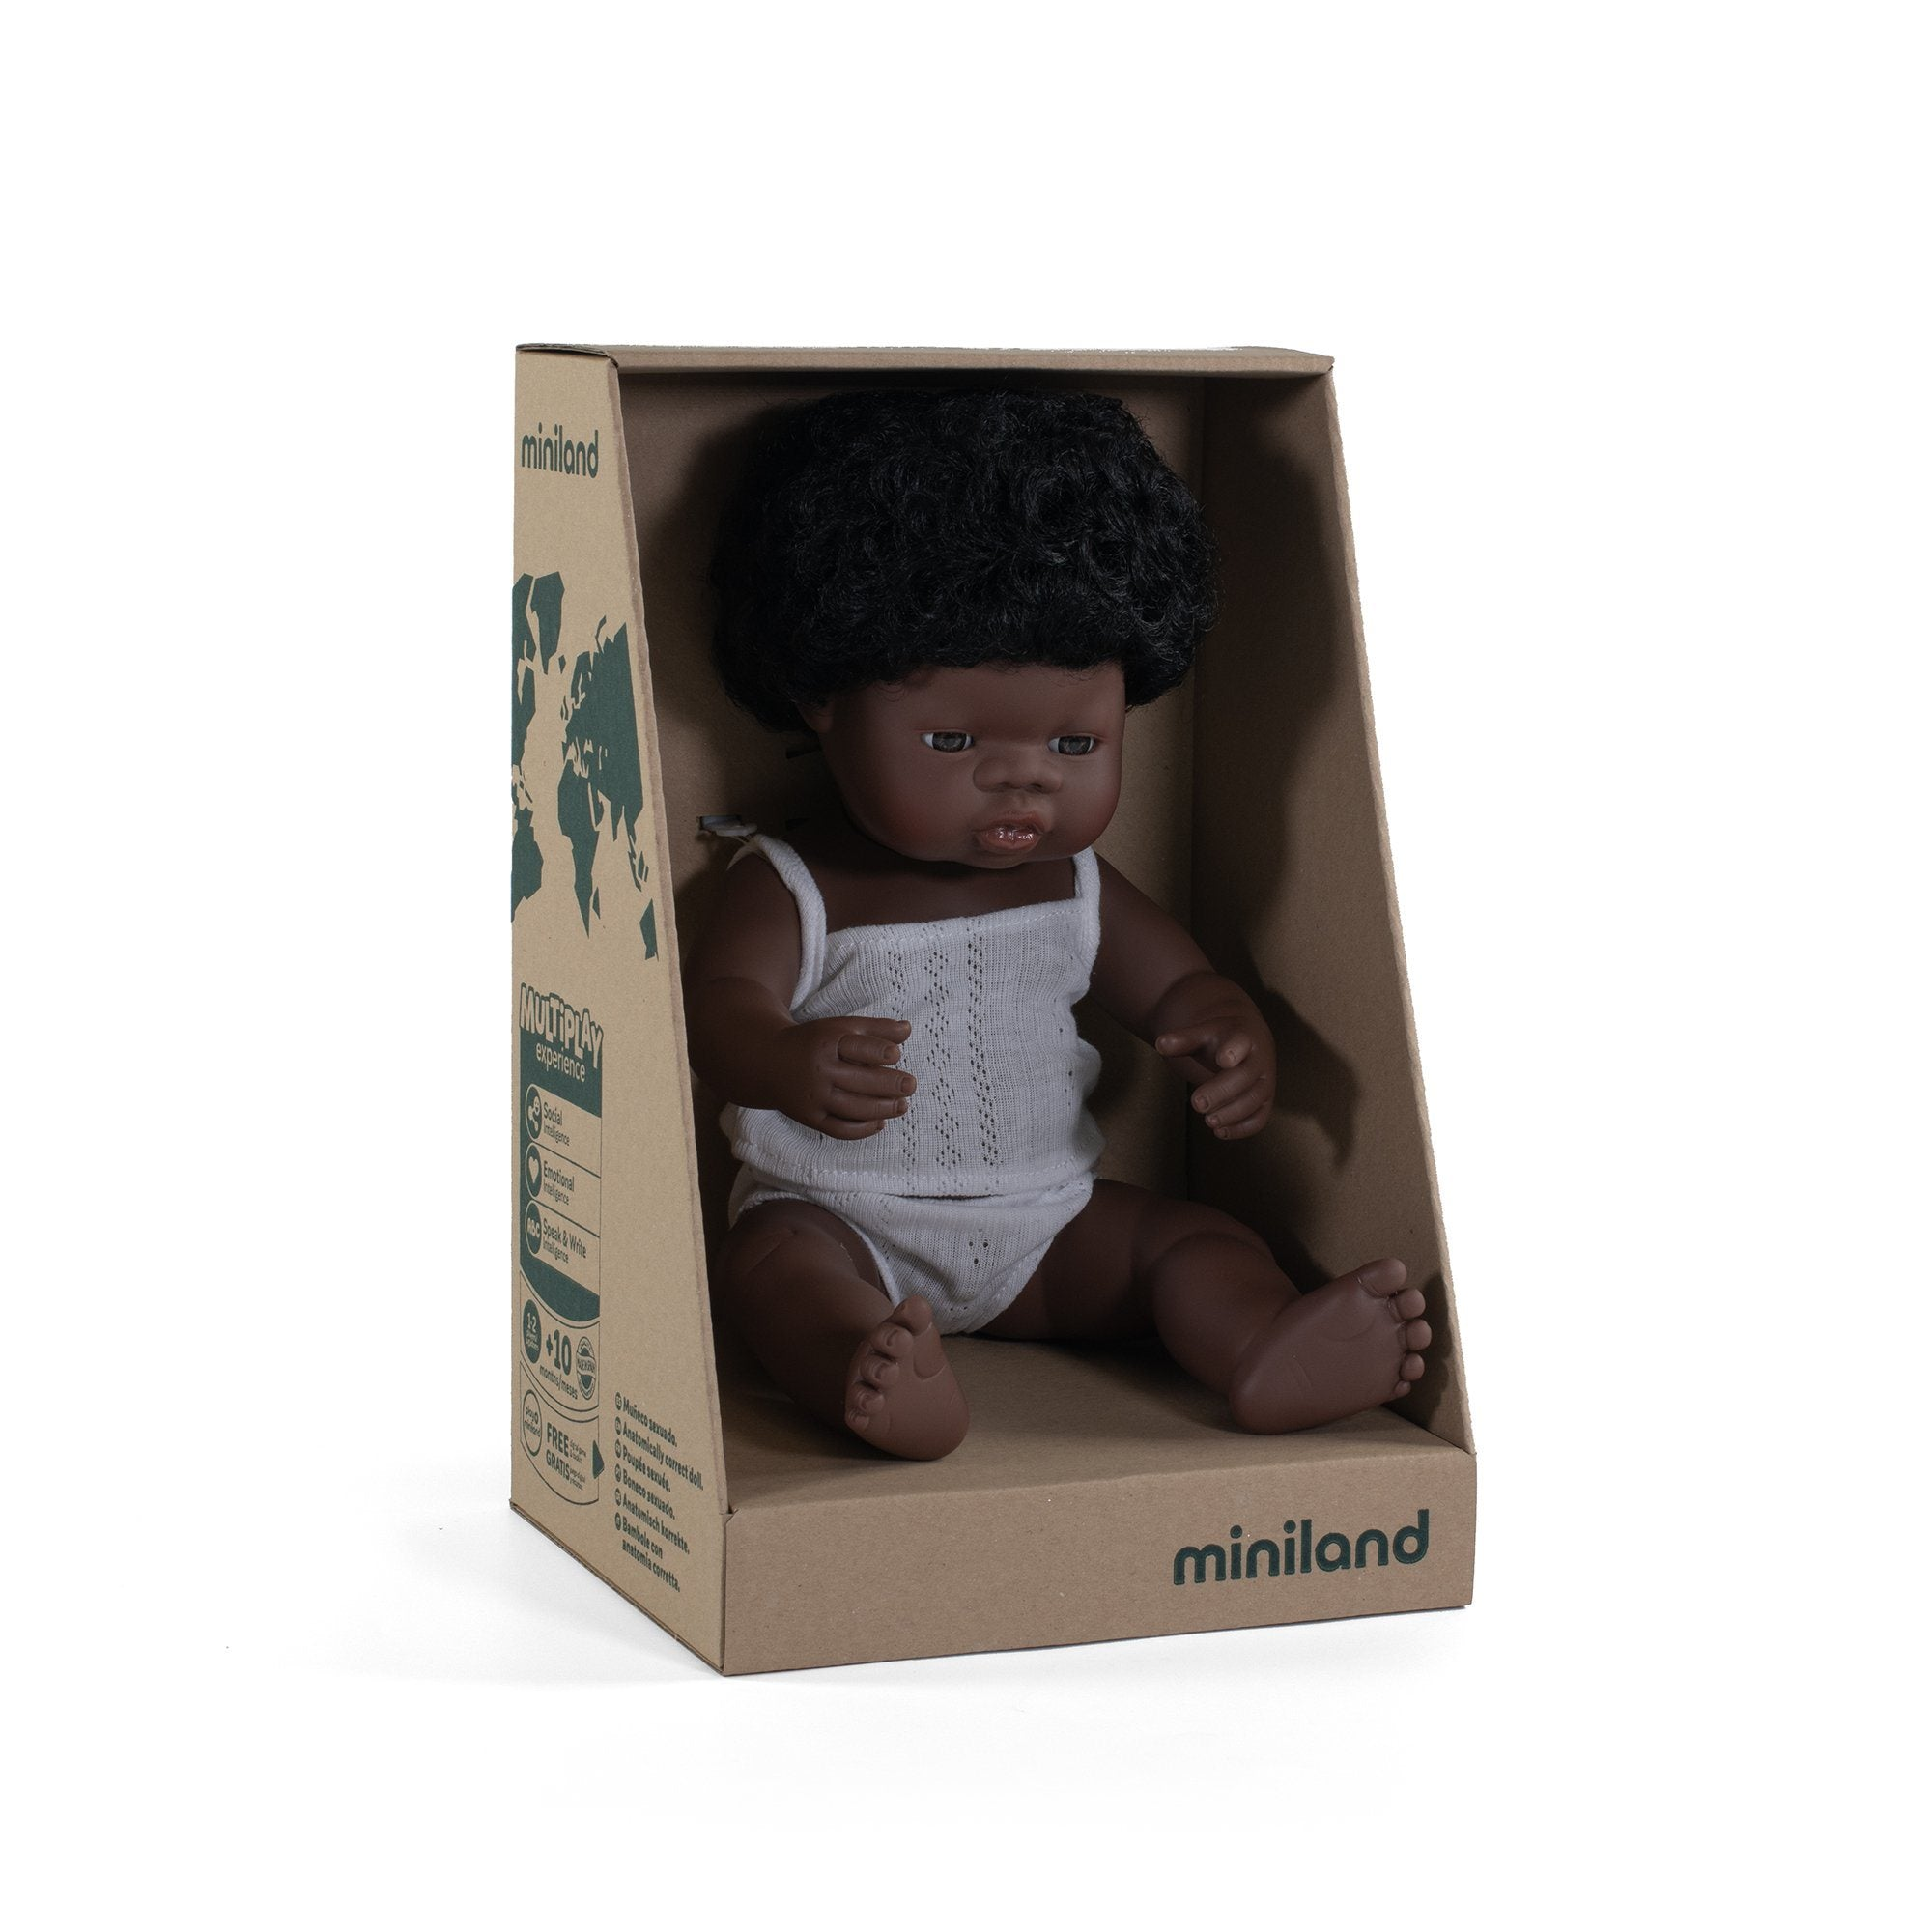 Miniland - Anatomically Correct Baby Doll - African Girl 38cm Toys Miniland Educational